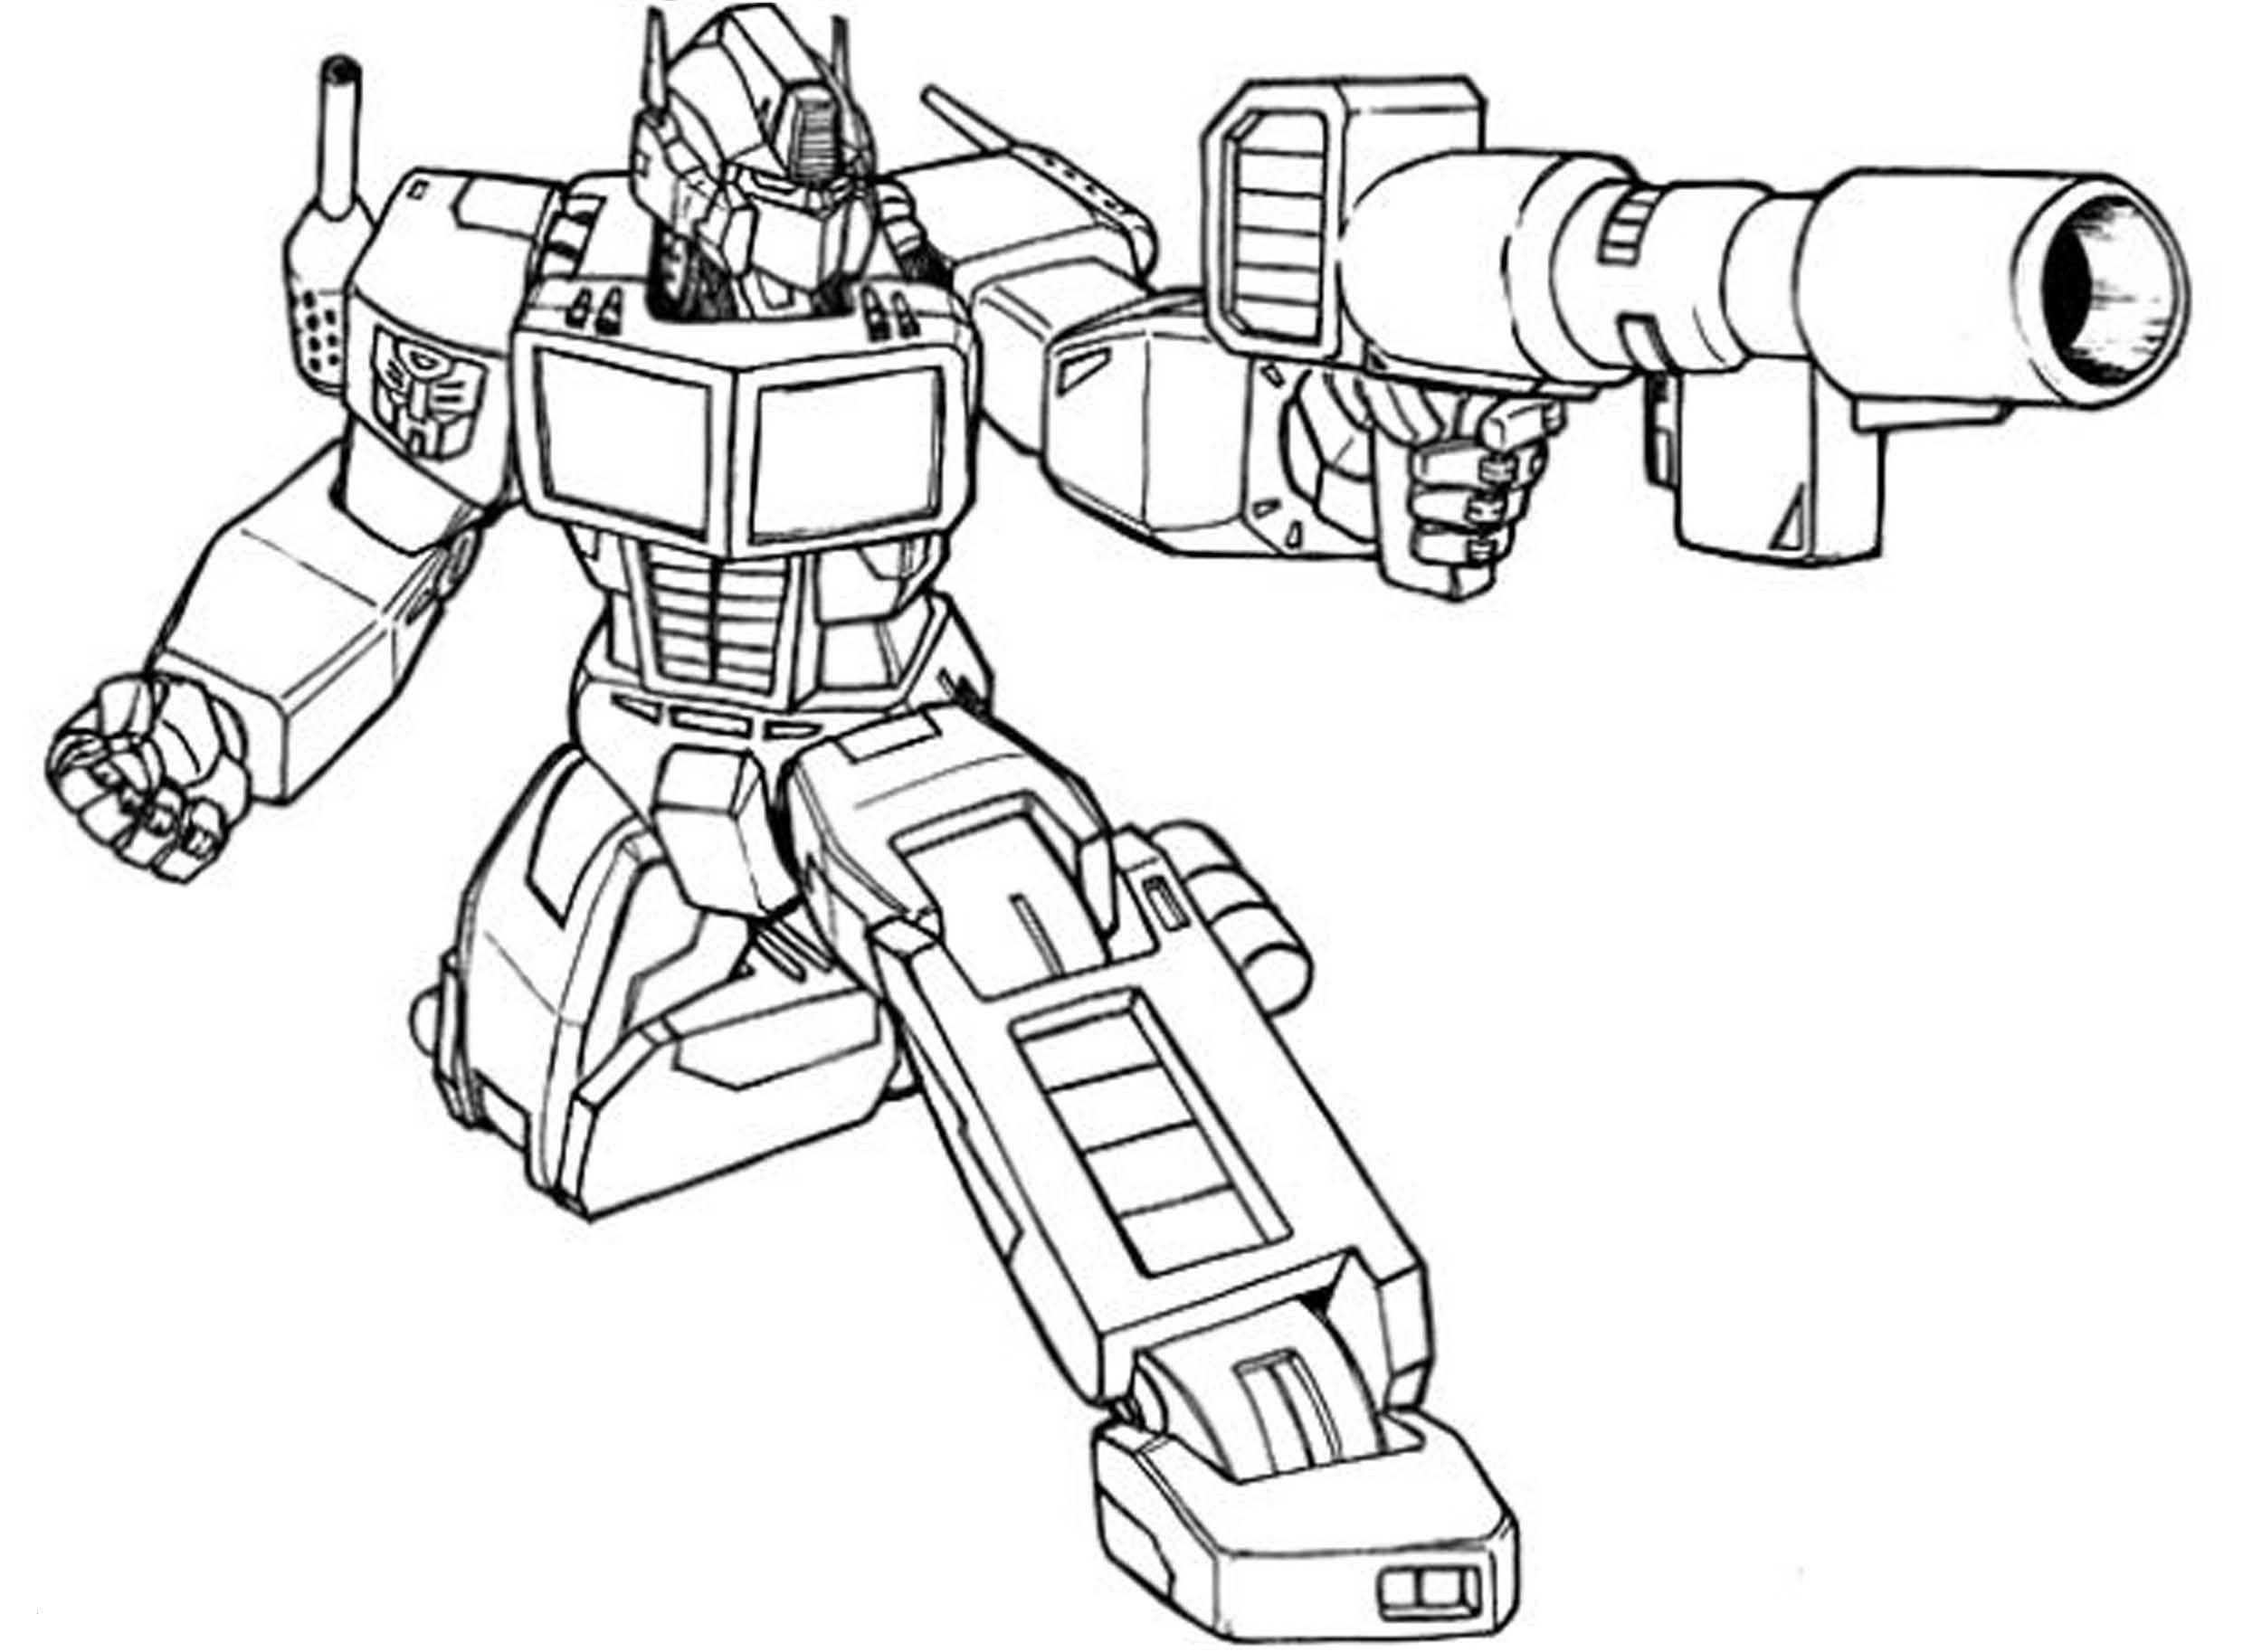 Megatron Coloring Pages Best Coloring Pages For Kids In 2020 Transformers Coloring Pages Bee Coloring Pages Coloring Pages